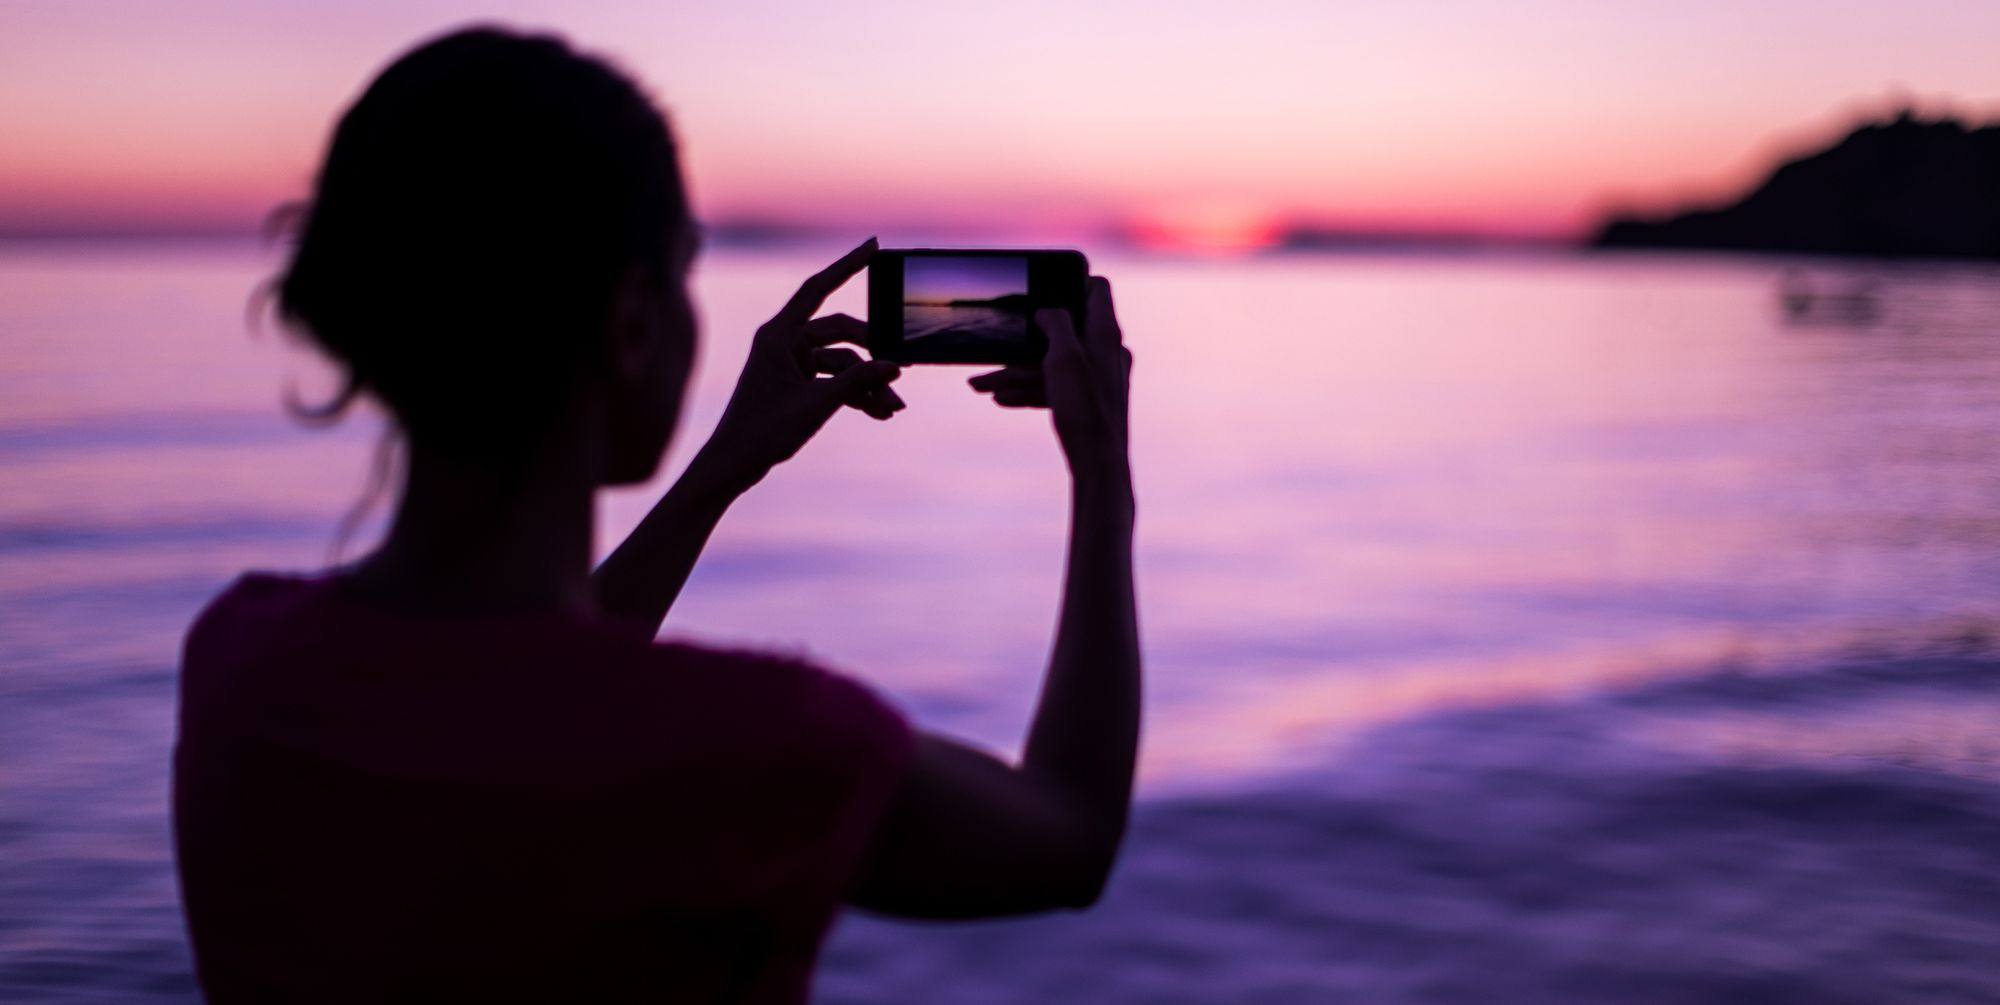 Days Inn Photographer Job — Get Paid To Take Instagram Sunset Photos